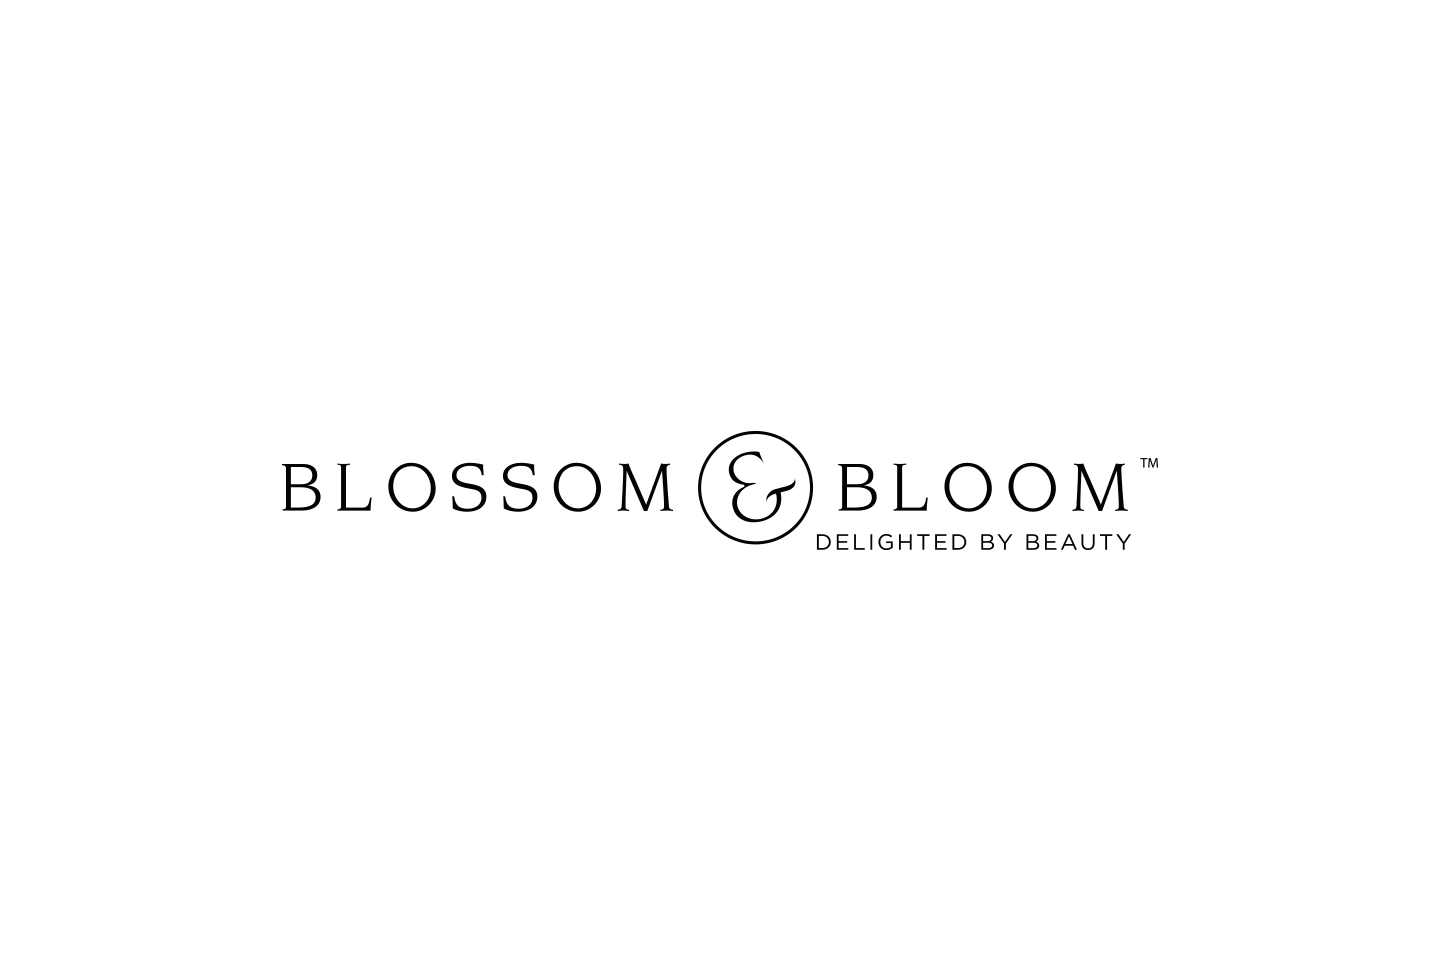 blossom bloom logo